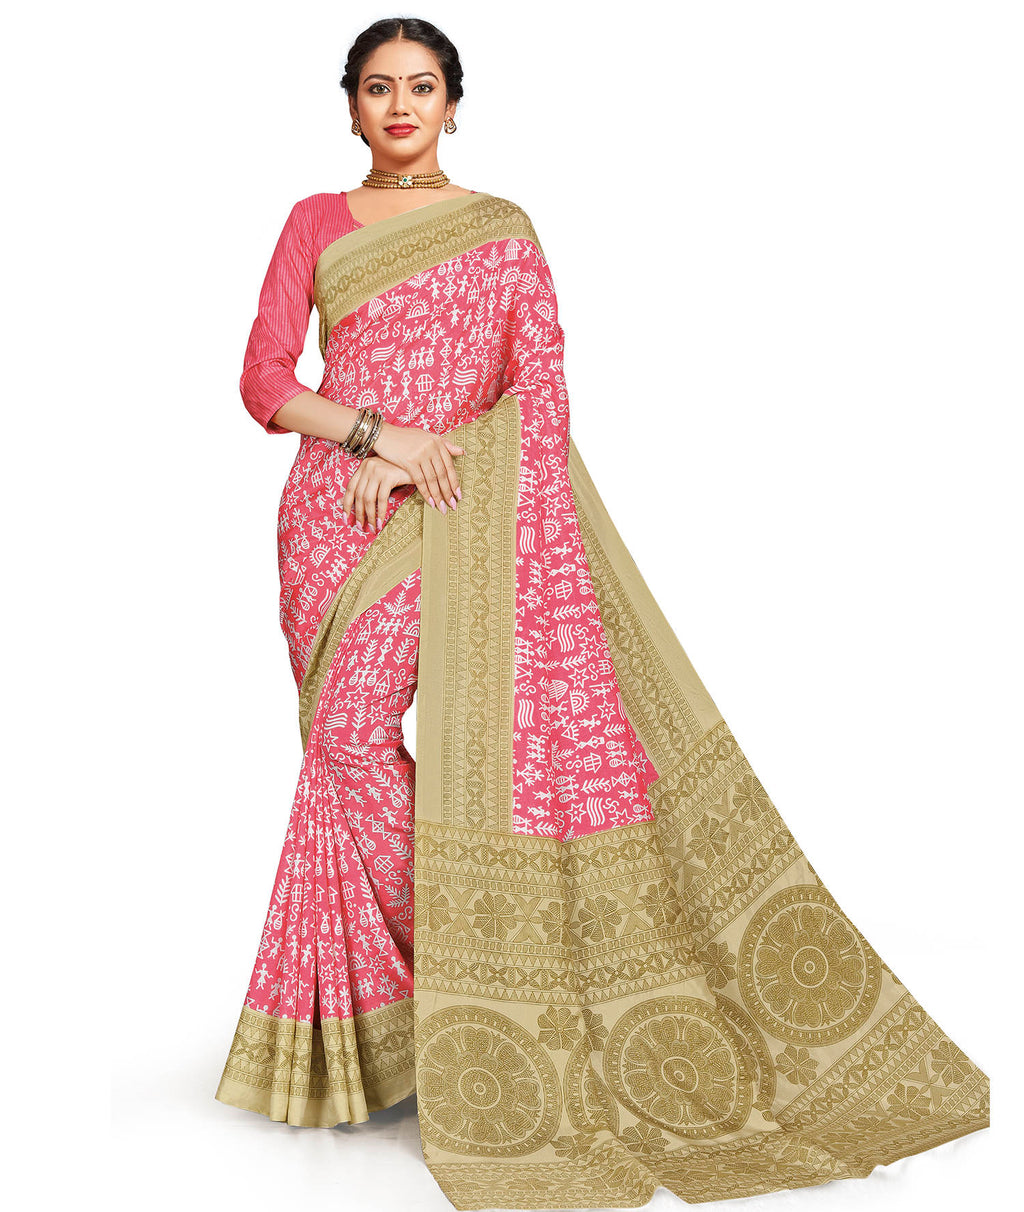 Pink Color Crepe Daily Wear Printed Sarees NYF-7802